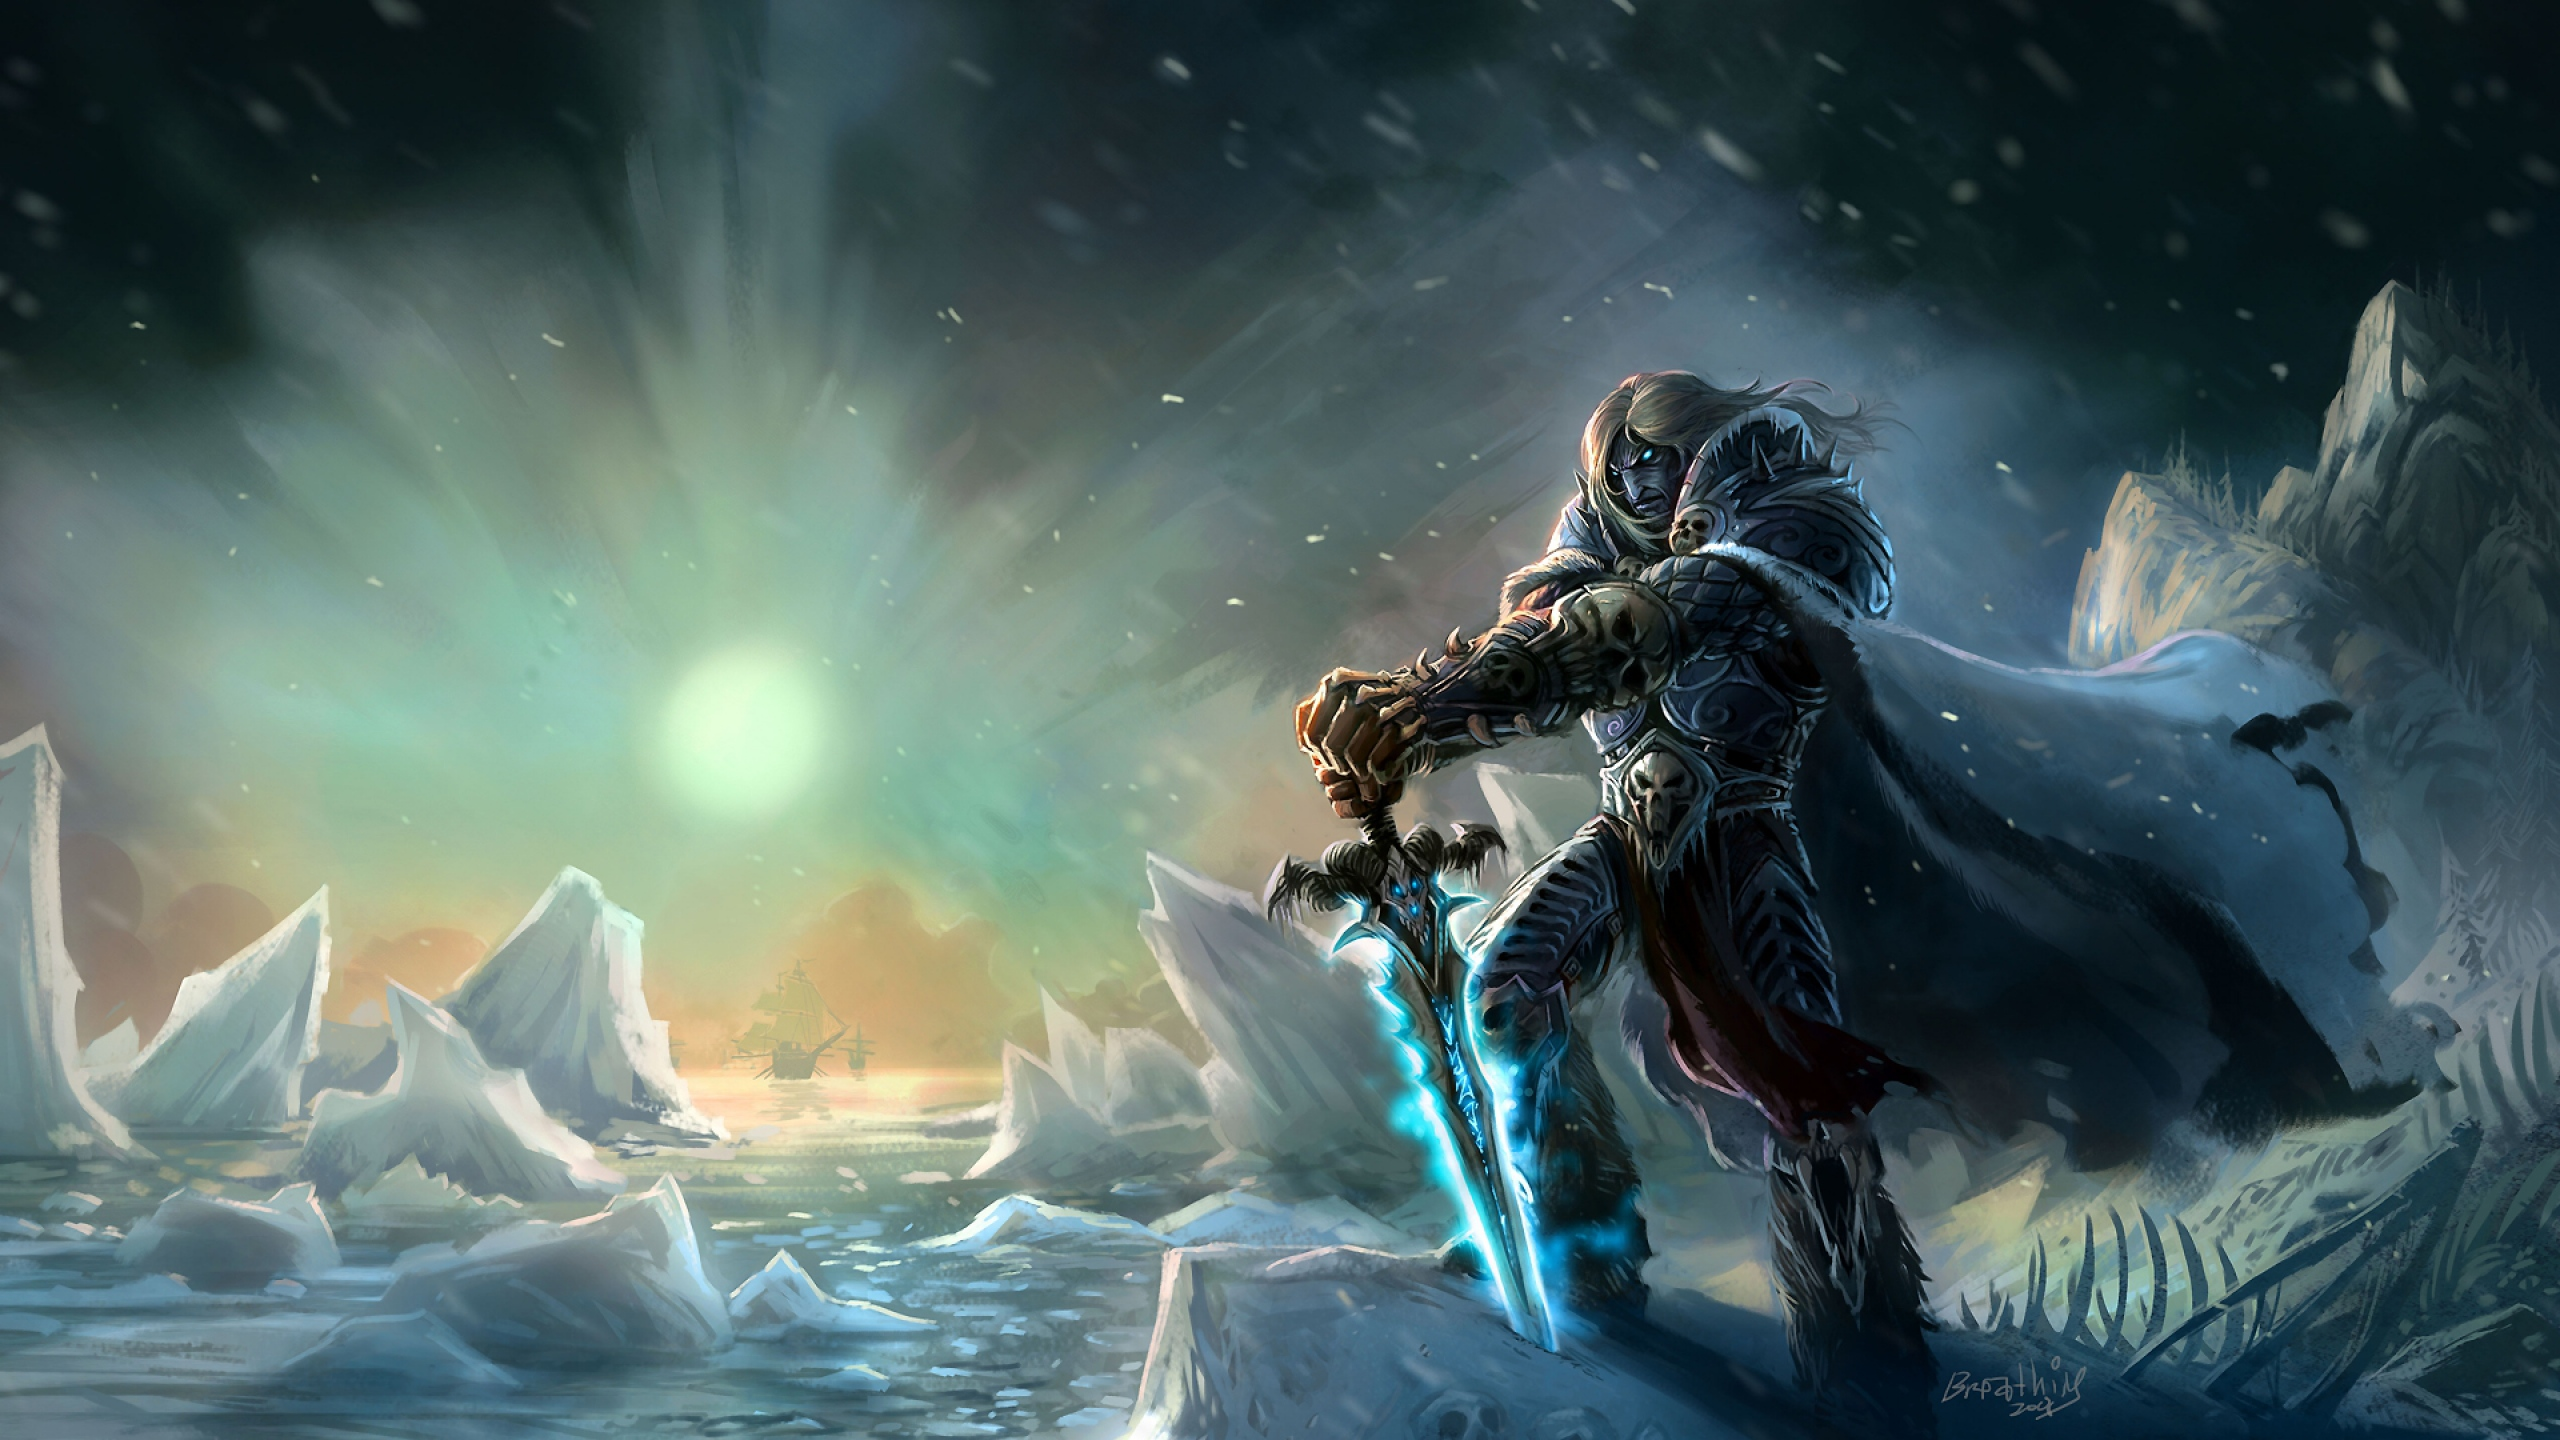 games_artwork_warcraft_82280_2560x1440